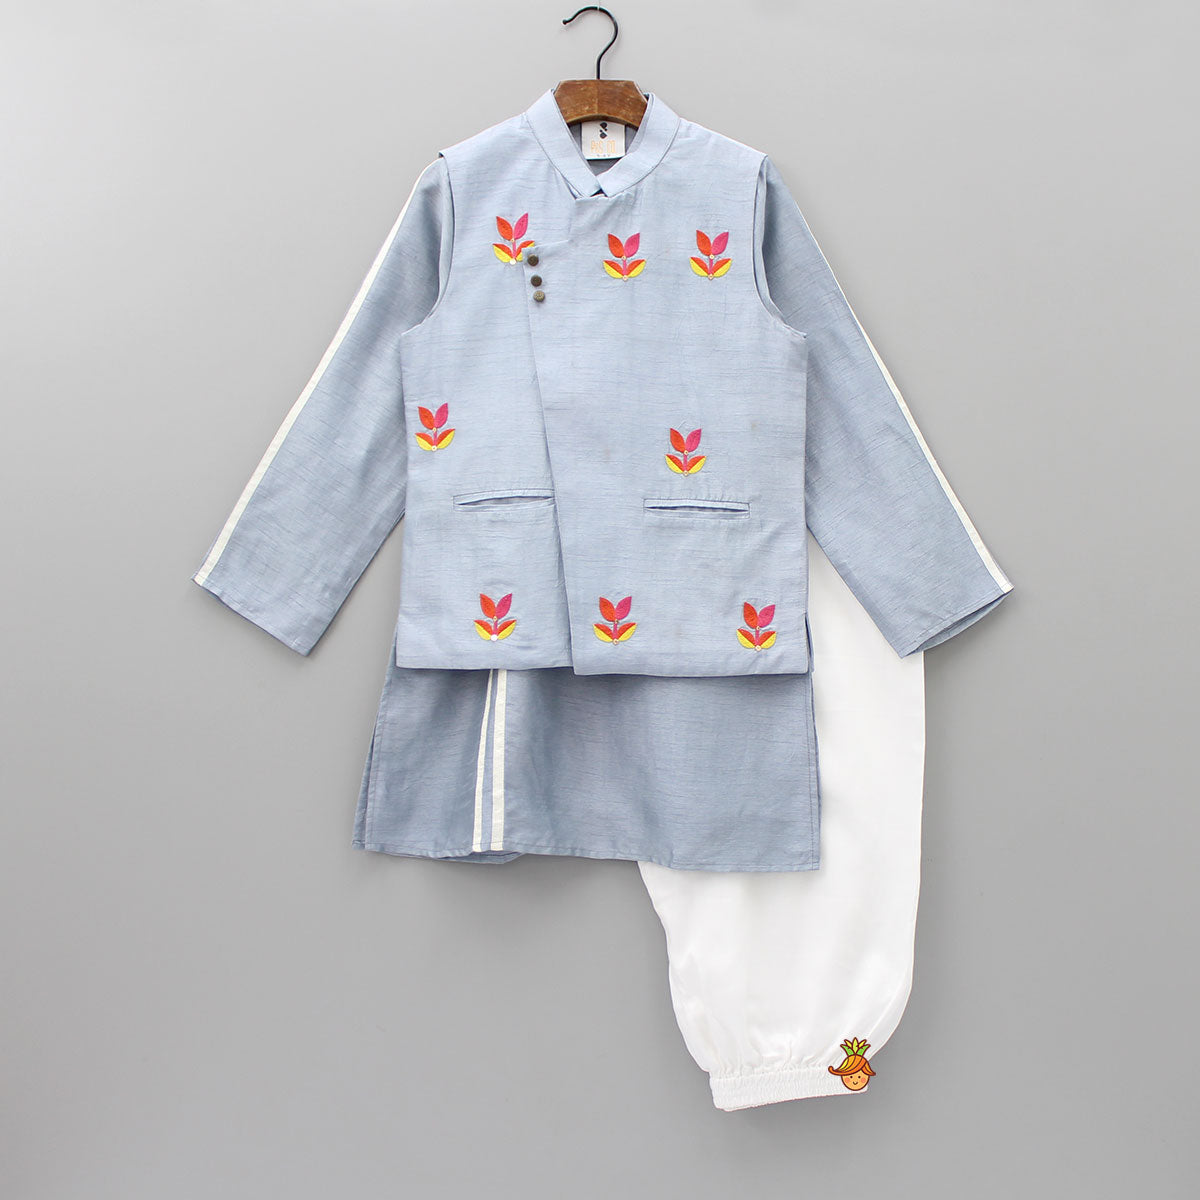 Pre Order: Stripy Kurta With Embroidered Floral Jacket And White Pyjama